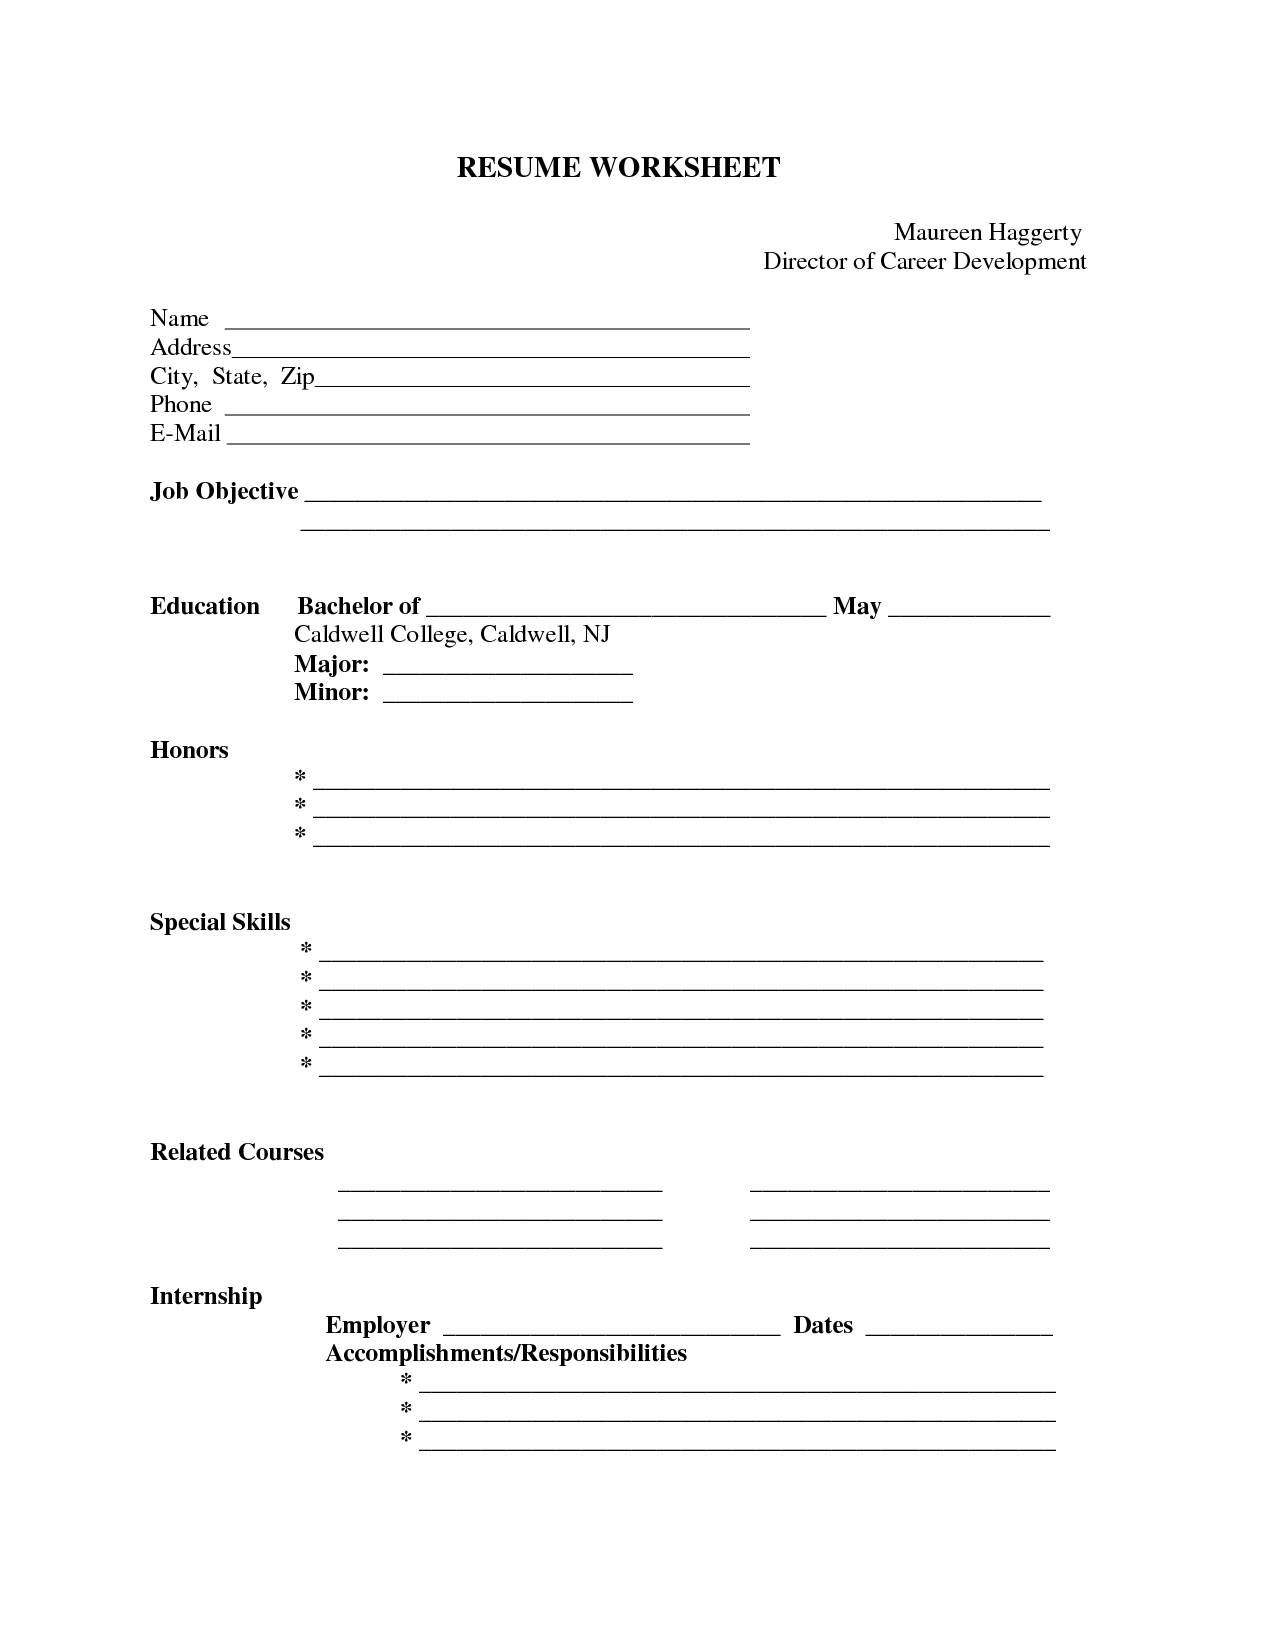 Free Printable Blank Resume Forms Httpwwwresumecareerinfo - Free resume templates to download and print